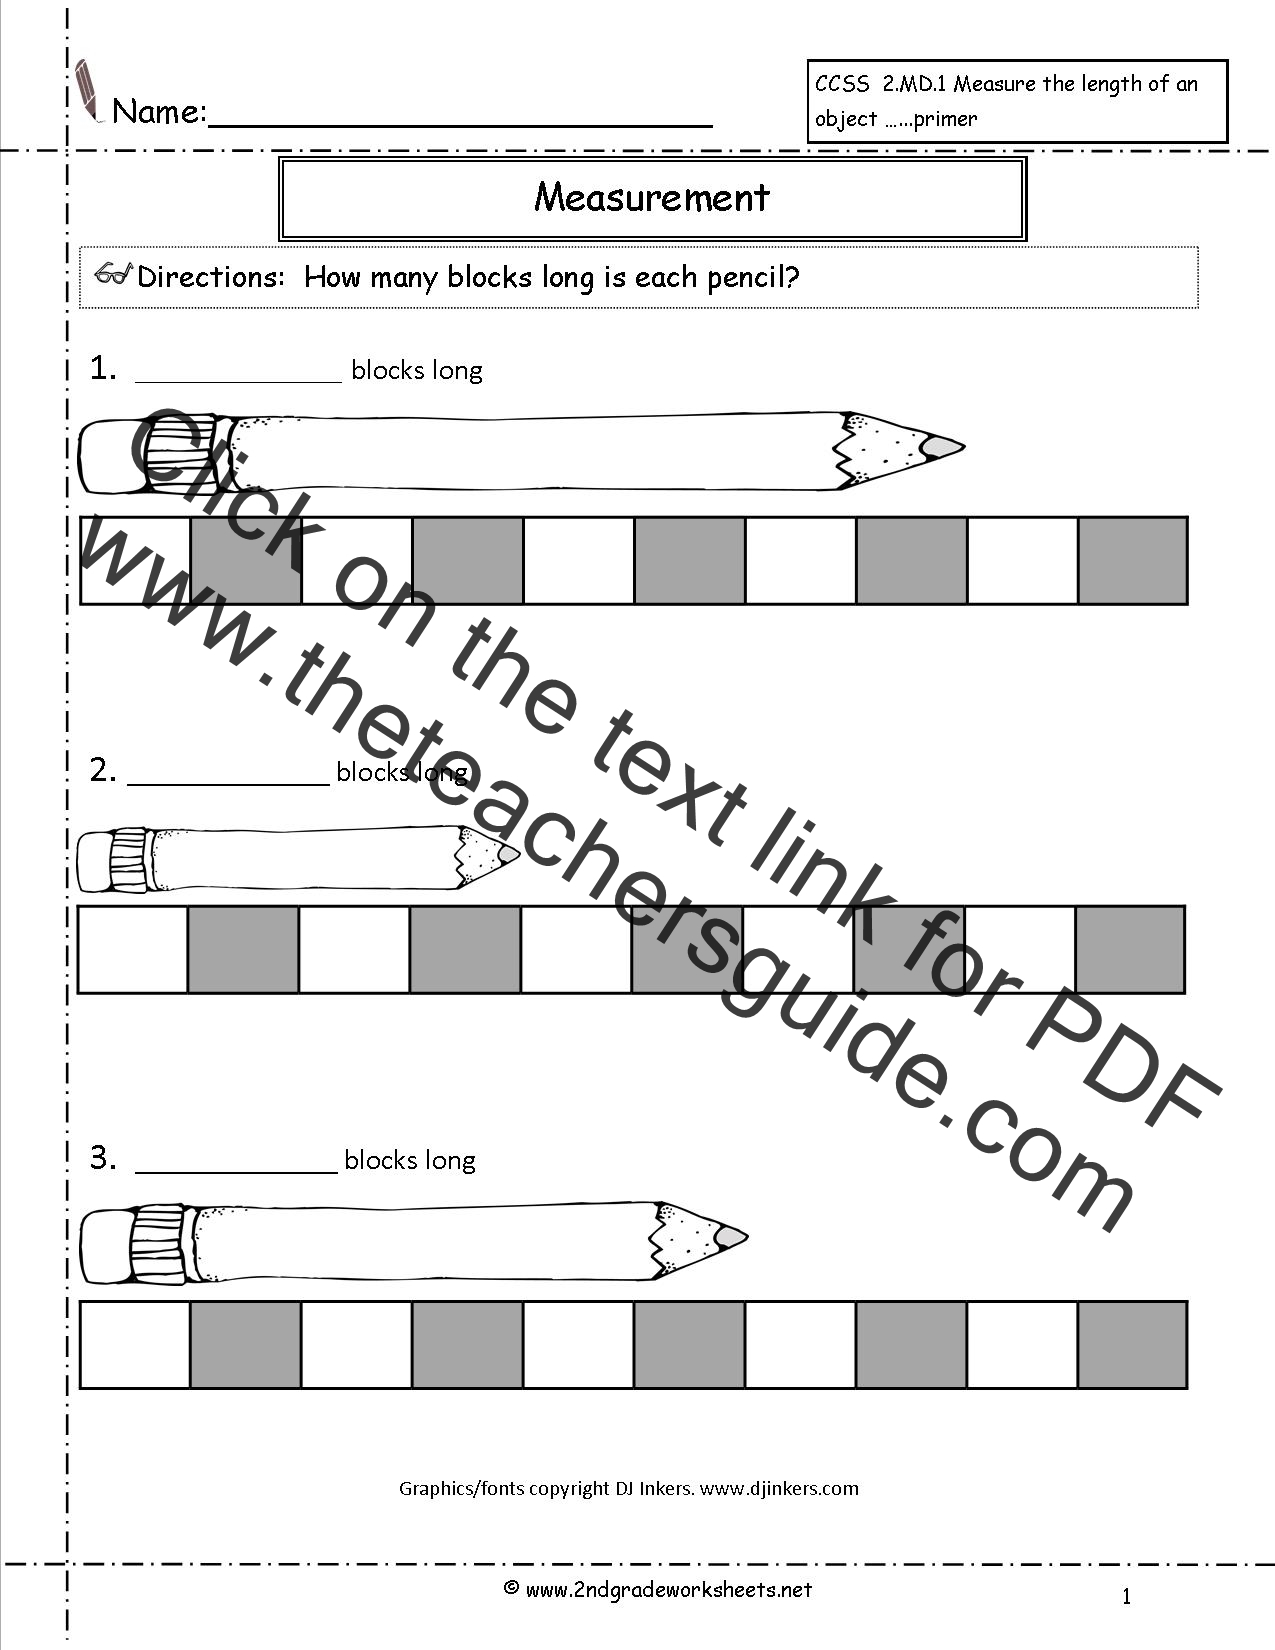 Worksheets Measuring Worksheets ccss 2 md 1 worksheets measuring worksheet